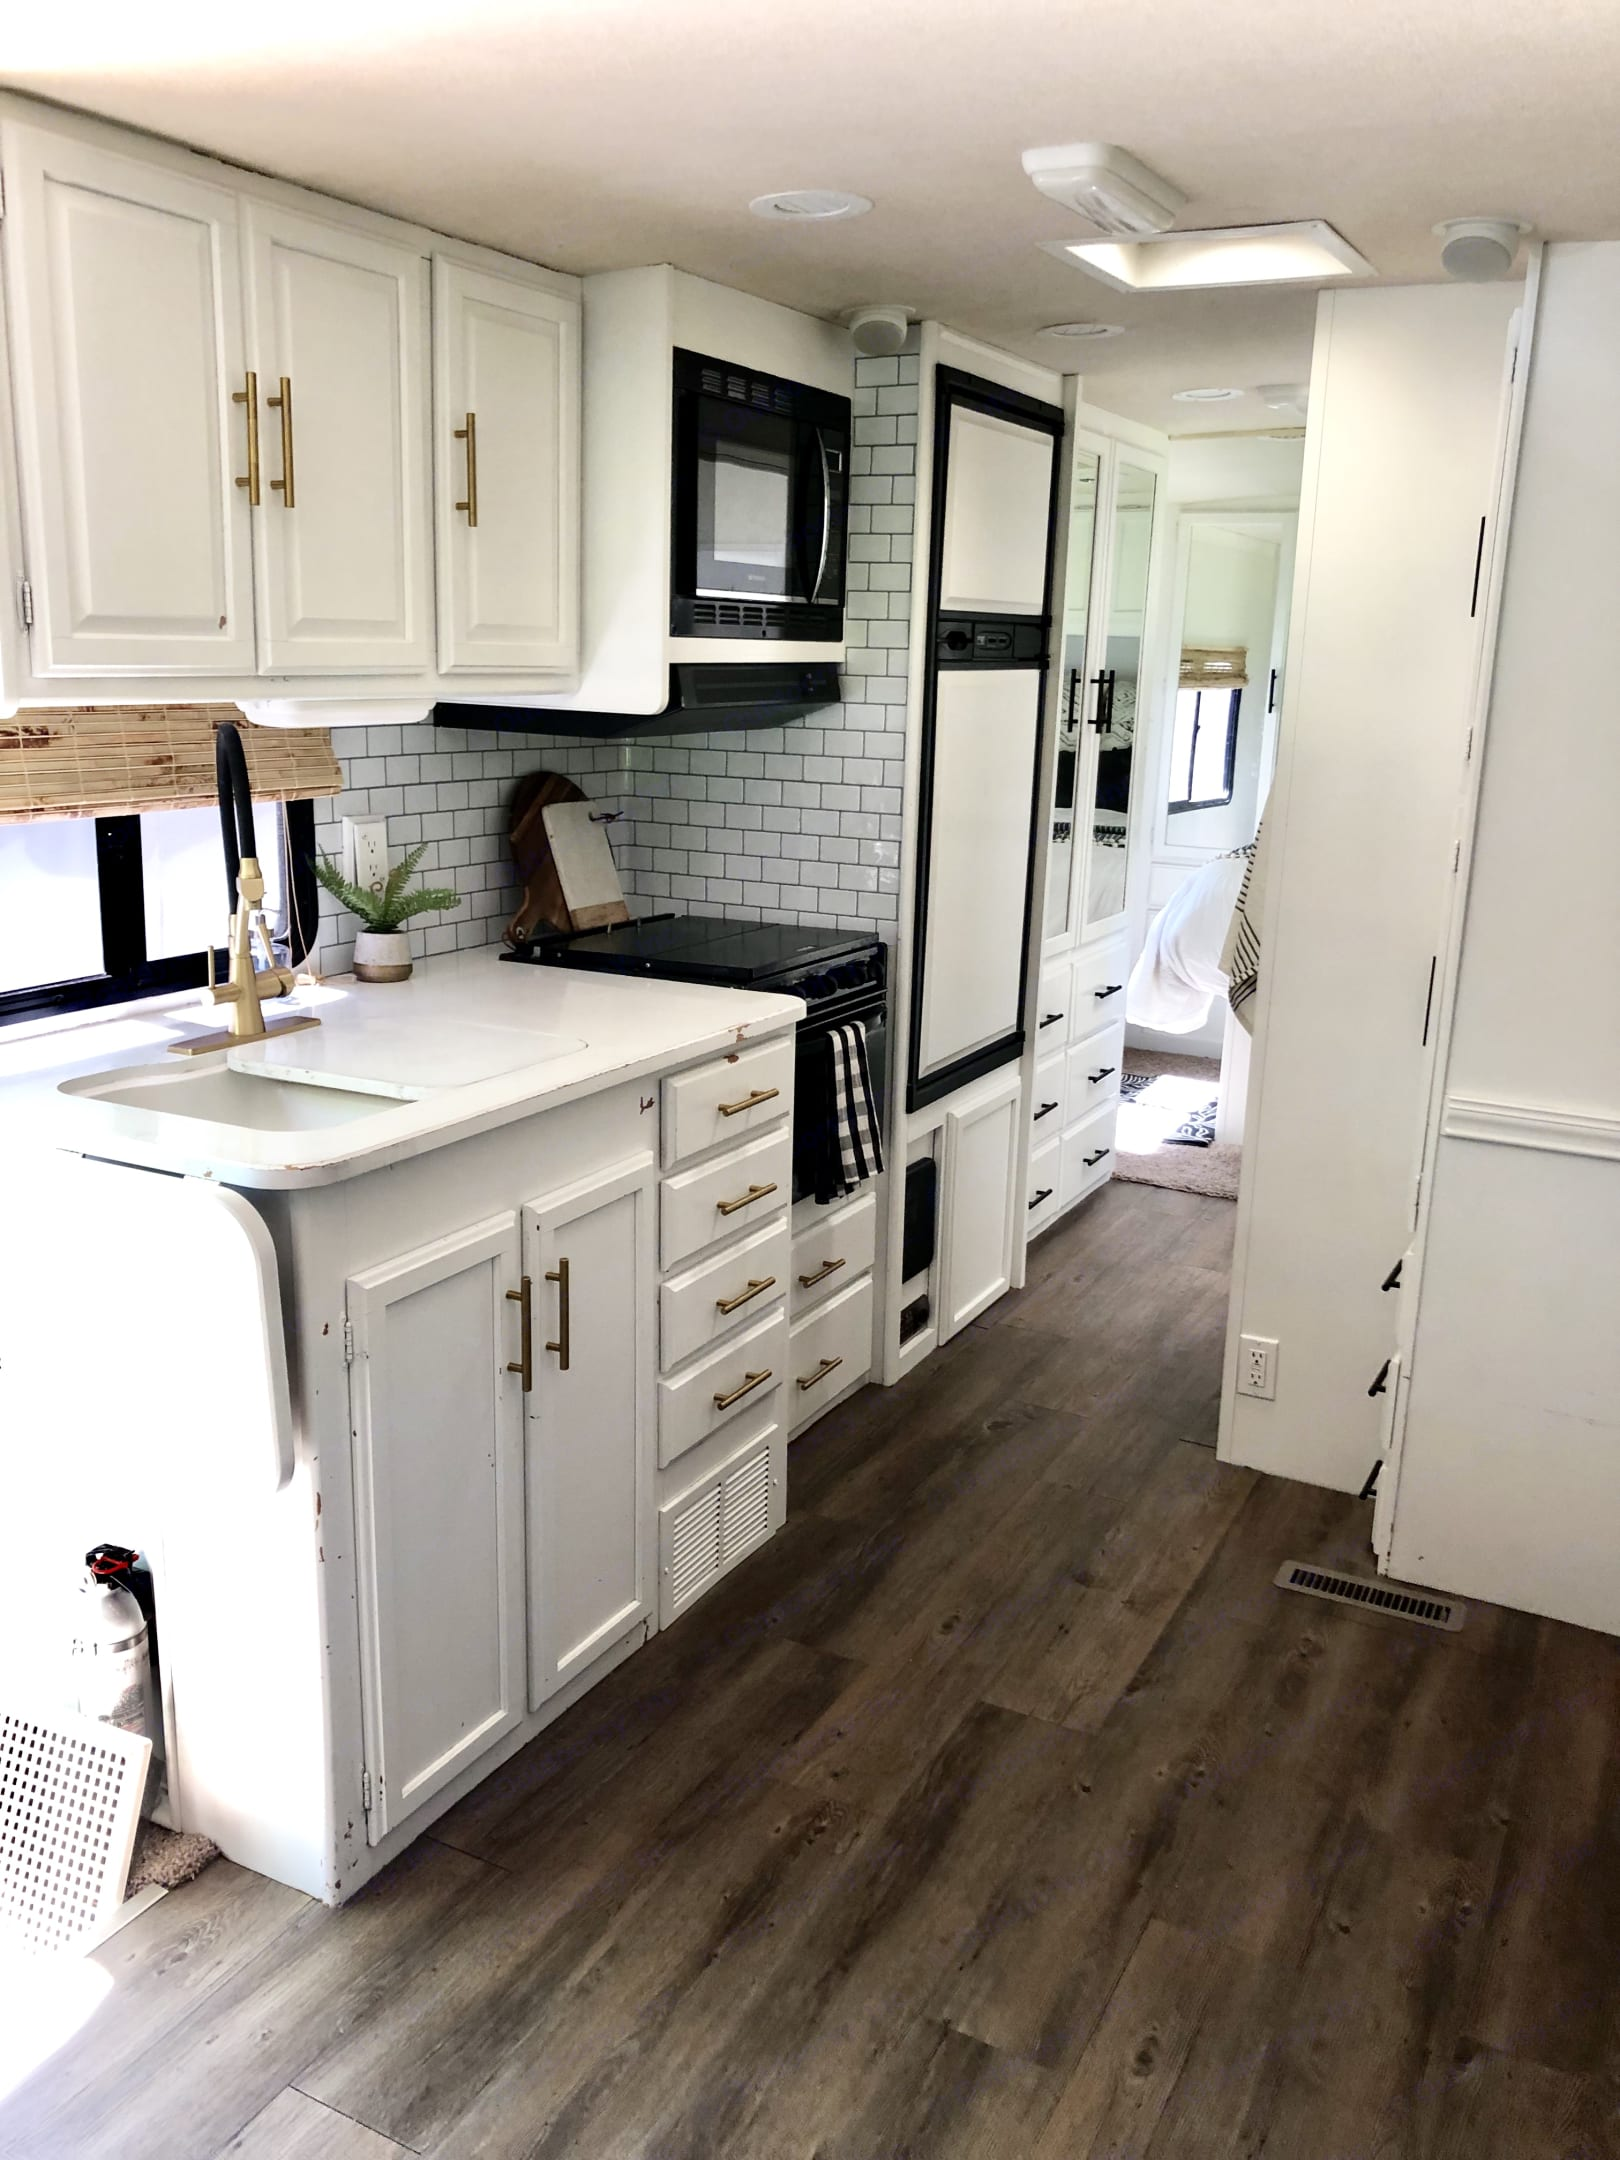 Updated kitchen has large sink, cabinets, basic cooking kitchen utensils and pans, 3 burner gas stove, oven, microwave, fridge, and freezer. . Winnebago Sightseer 2007